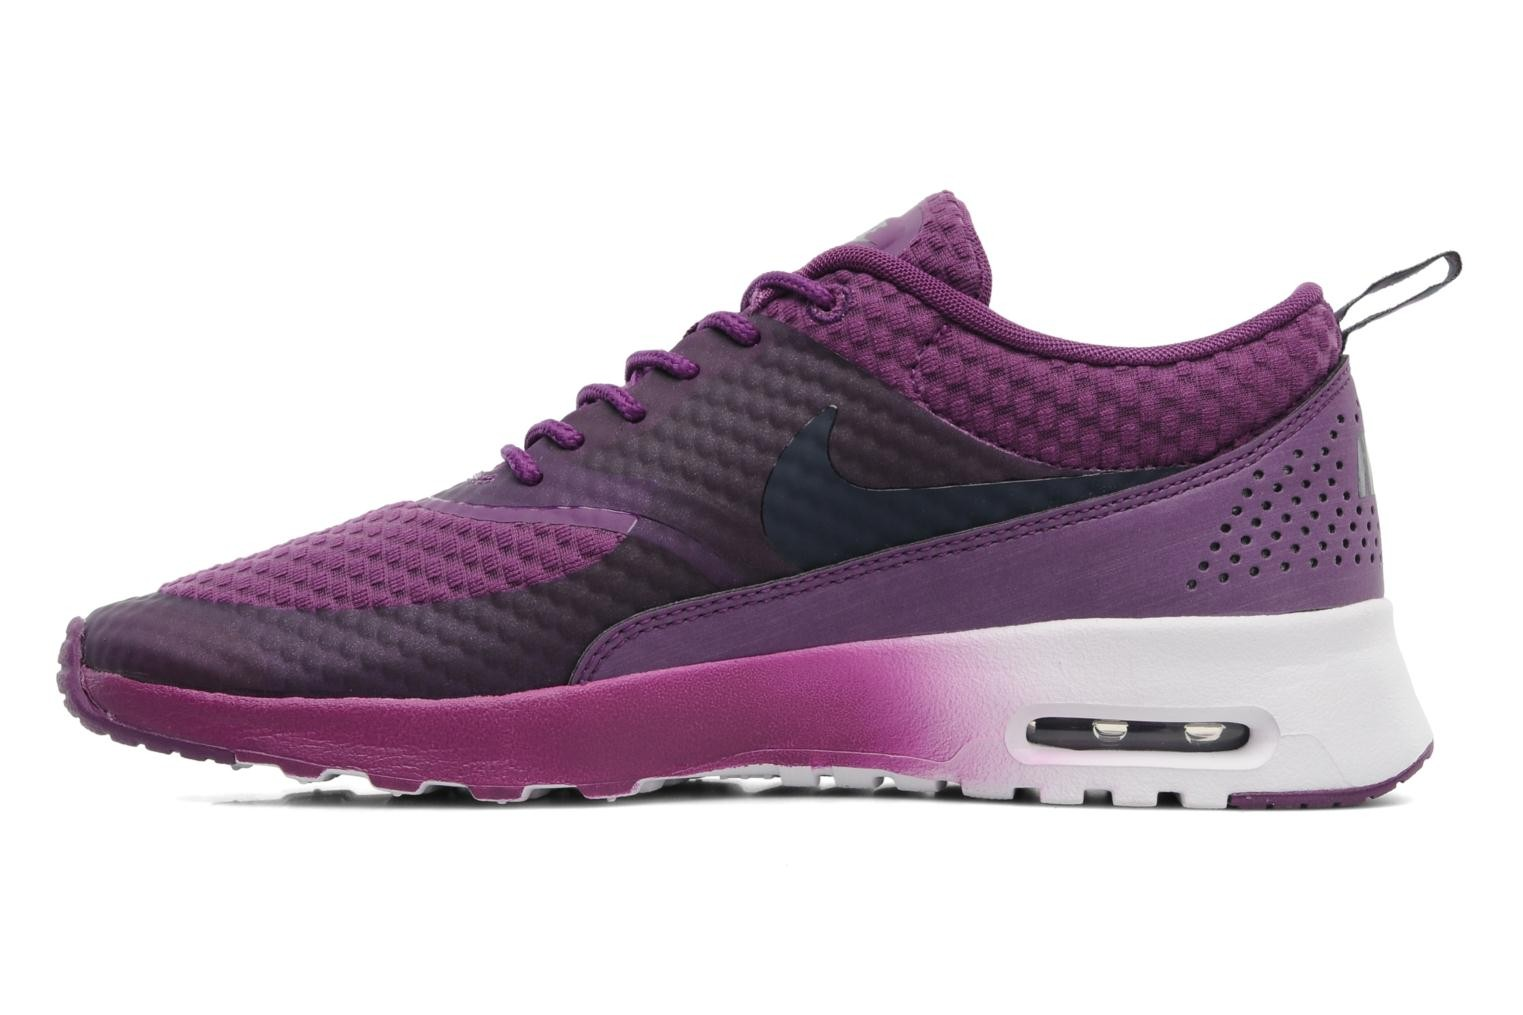 ... Womens Nike Air Max Thea Premium Running Shoes Bright Grape/  Obsidian/Metallic Silver/ ...